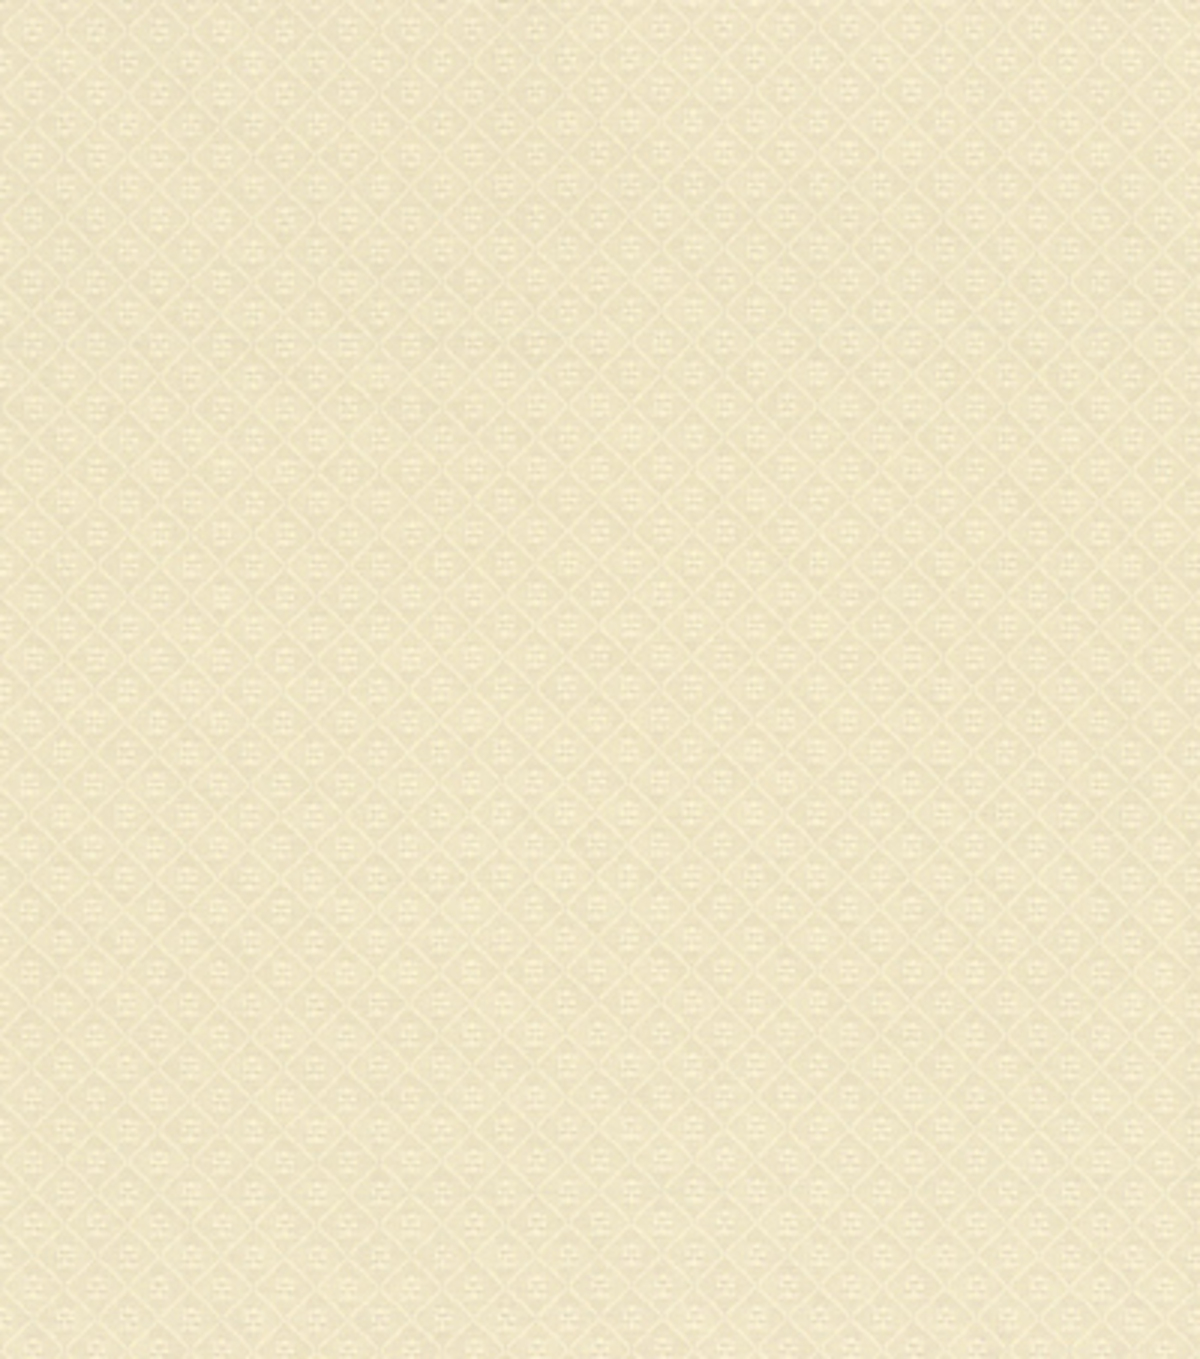 Home Decor 8\u0022x8\u0022 Fabric Swatch-Richloom Studio Pfeiffer Cream